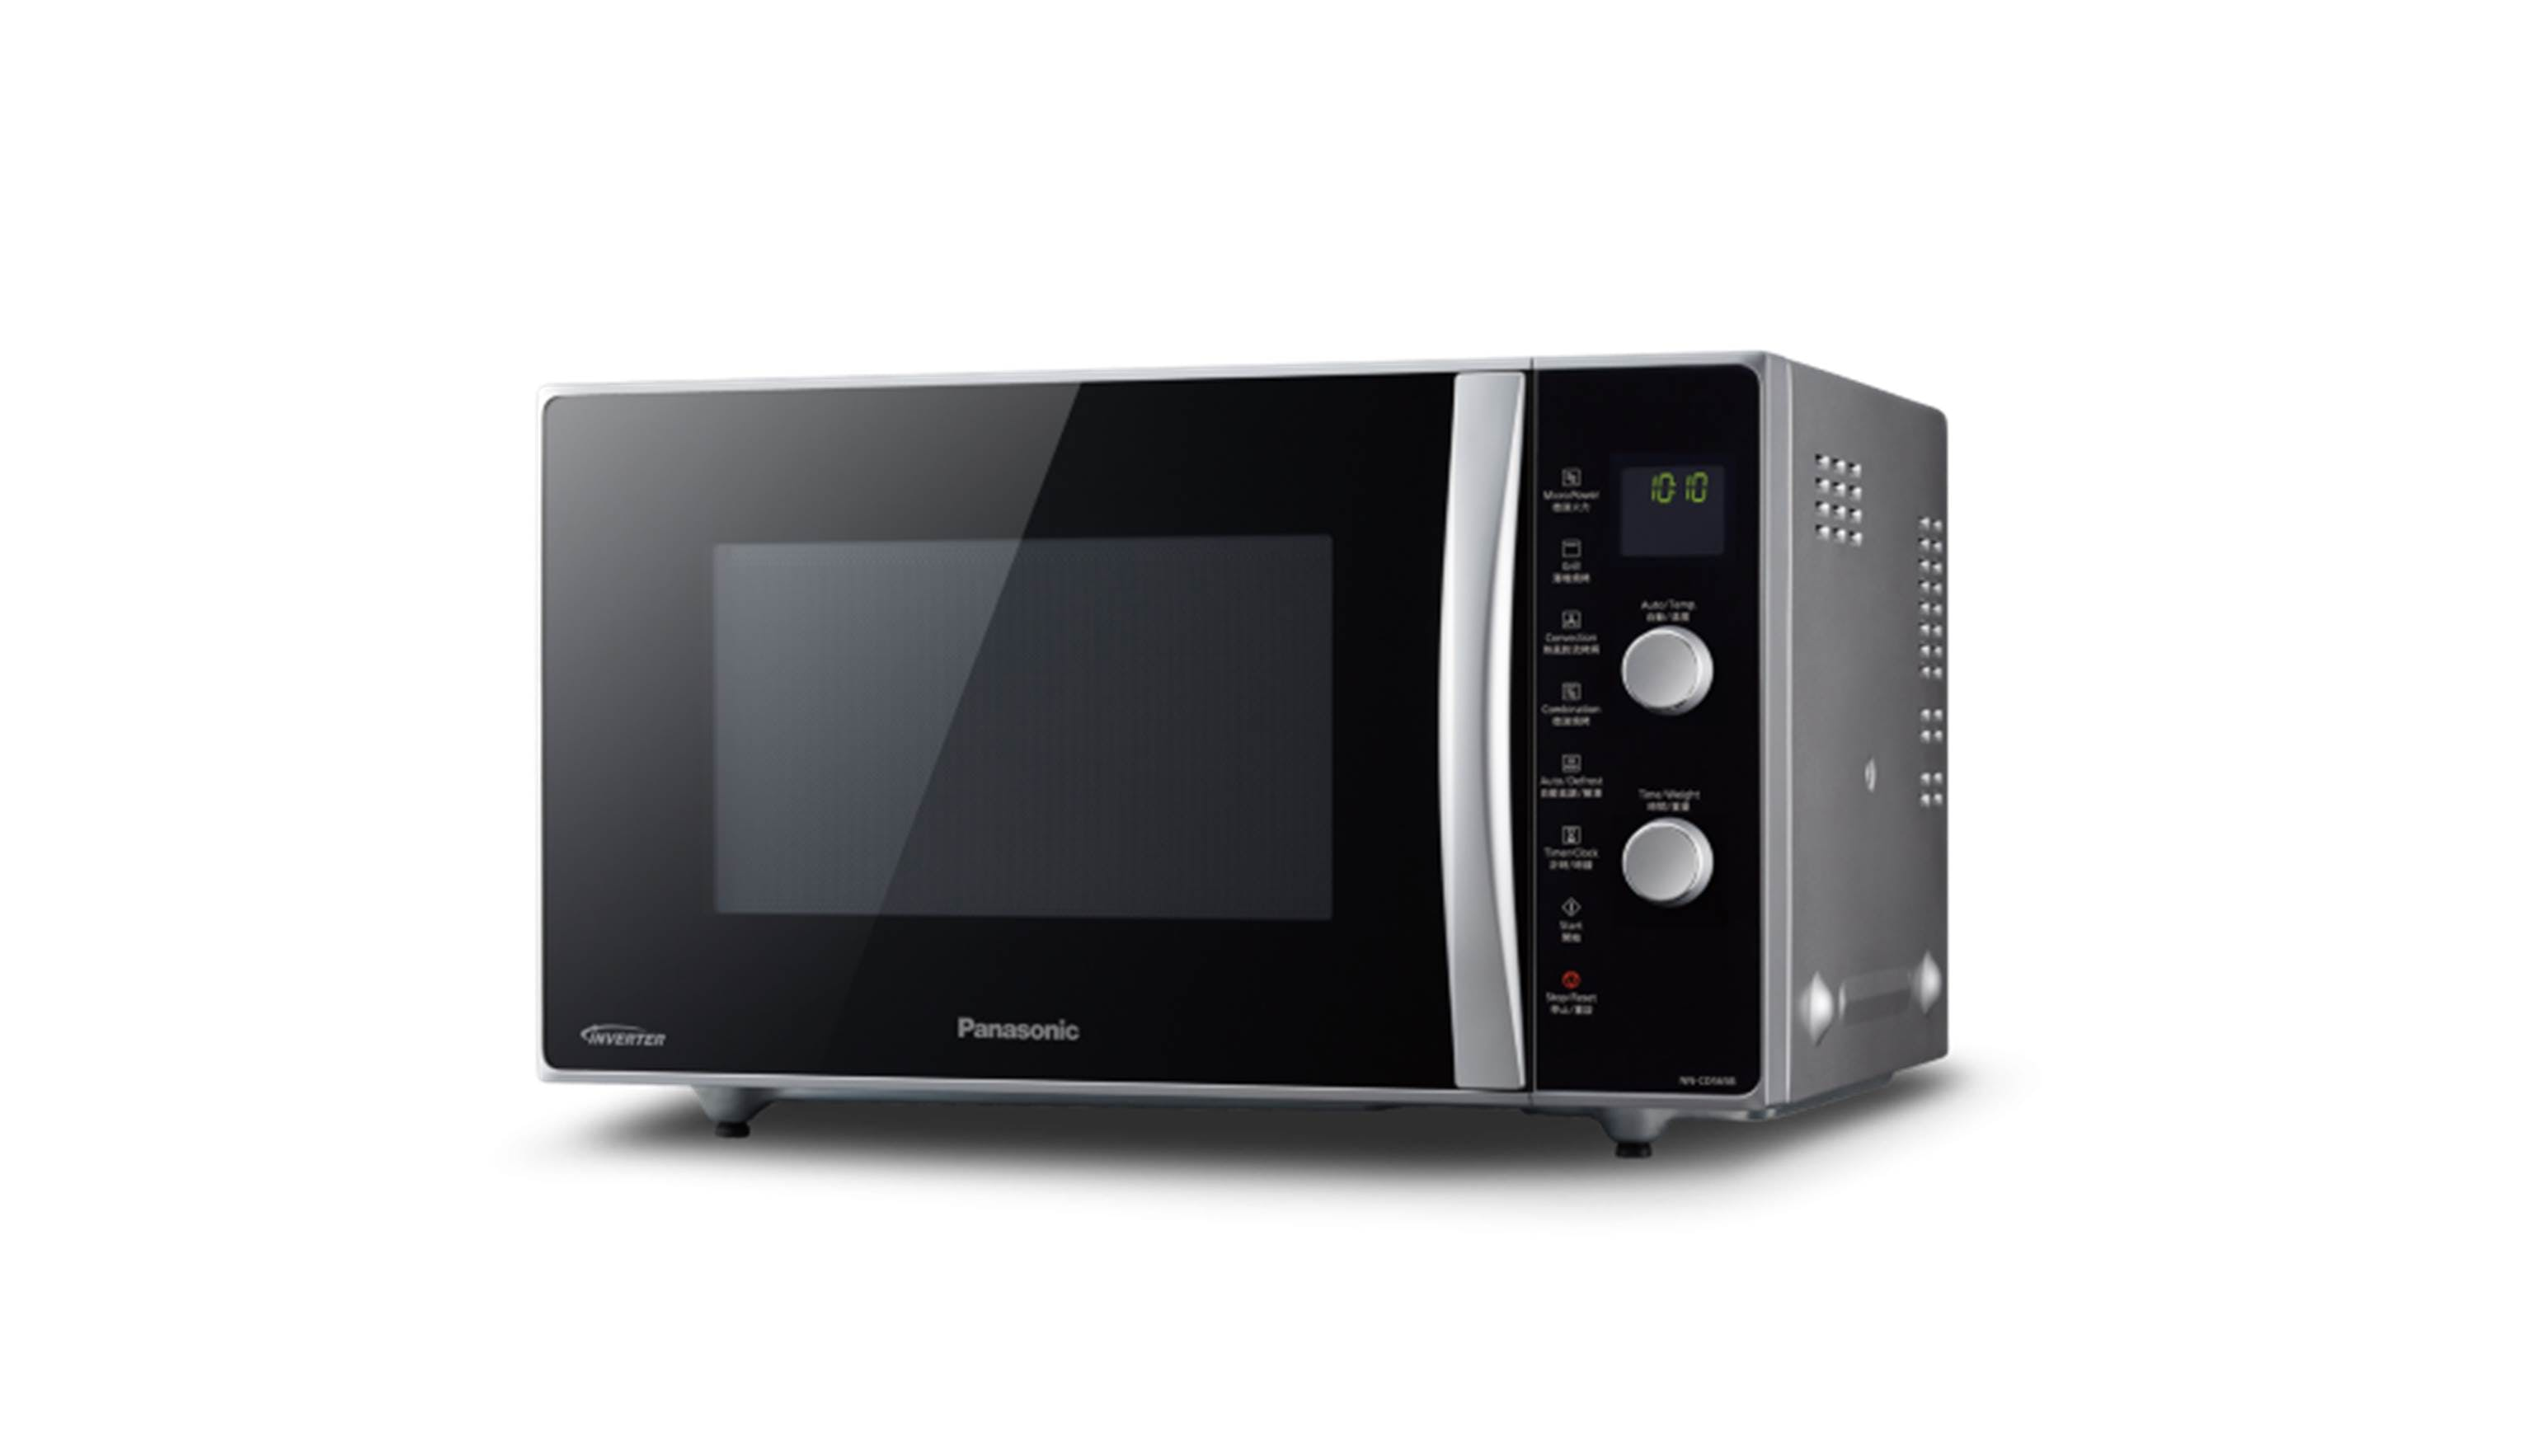 combo glam specialty a appliances convection and look microwaves blog toaster into the hood viking microwave ovens